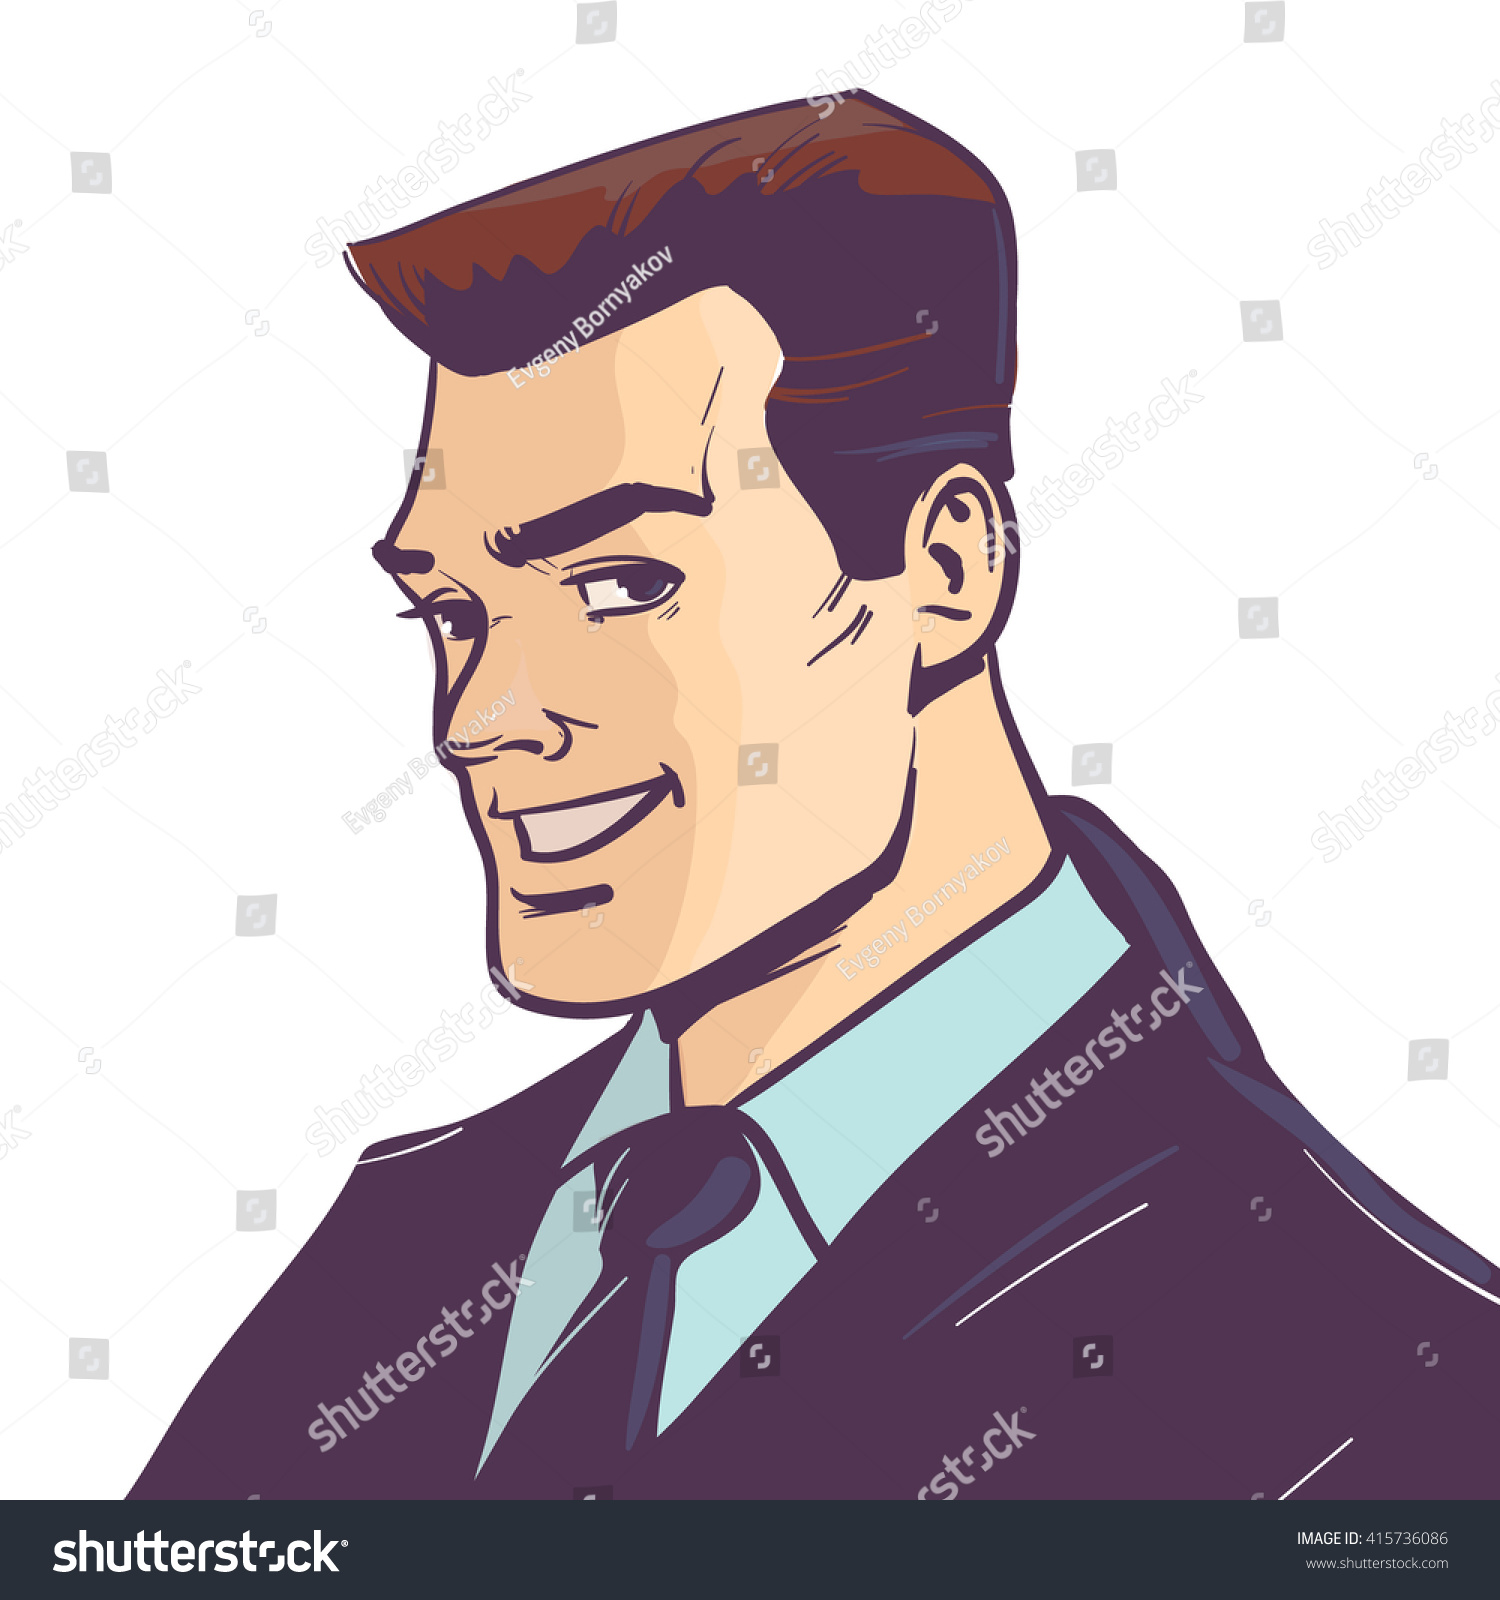 cartoon style smiling happy - photo #23